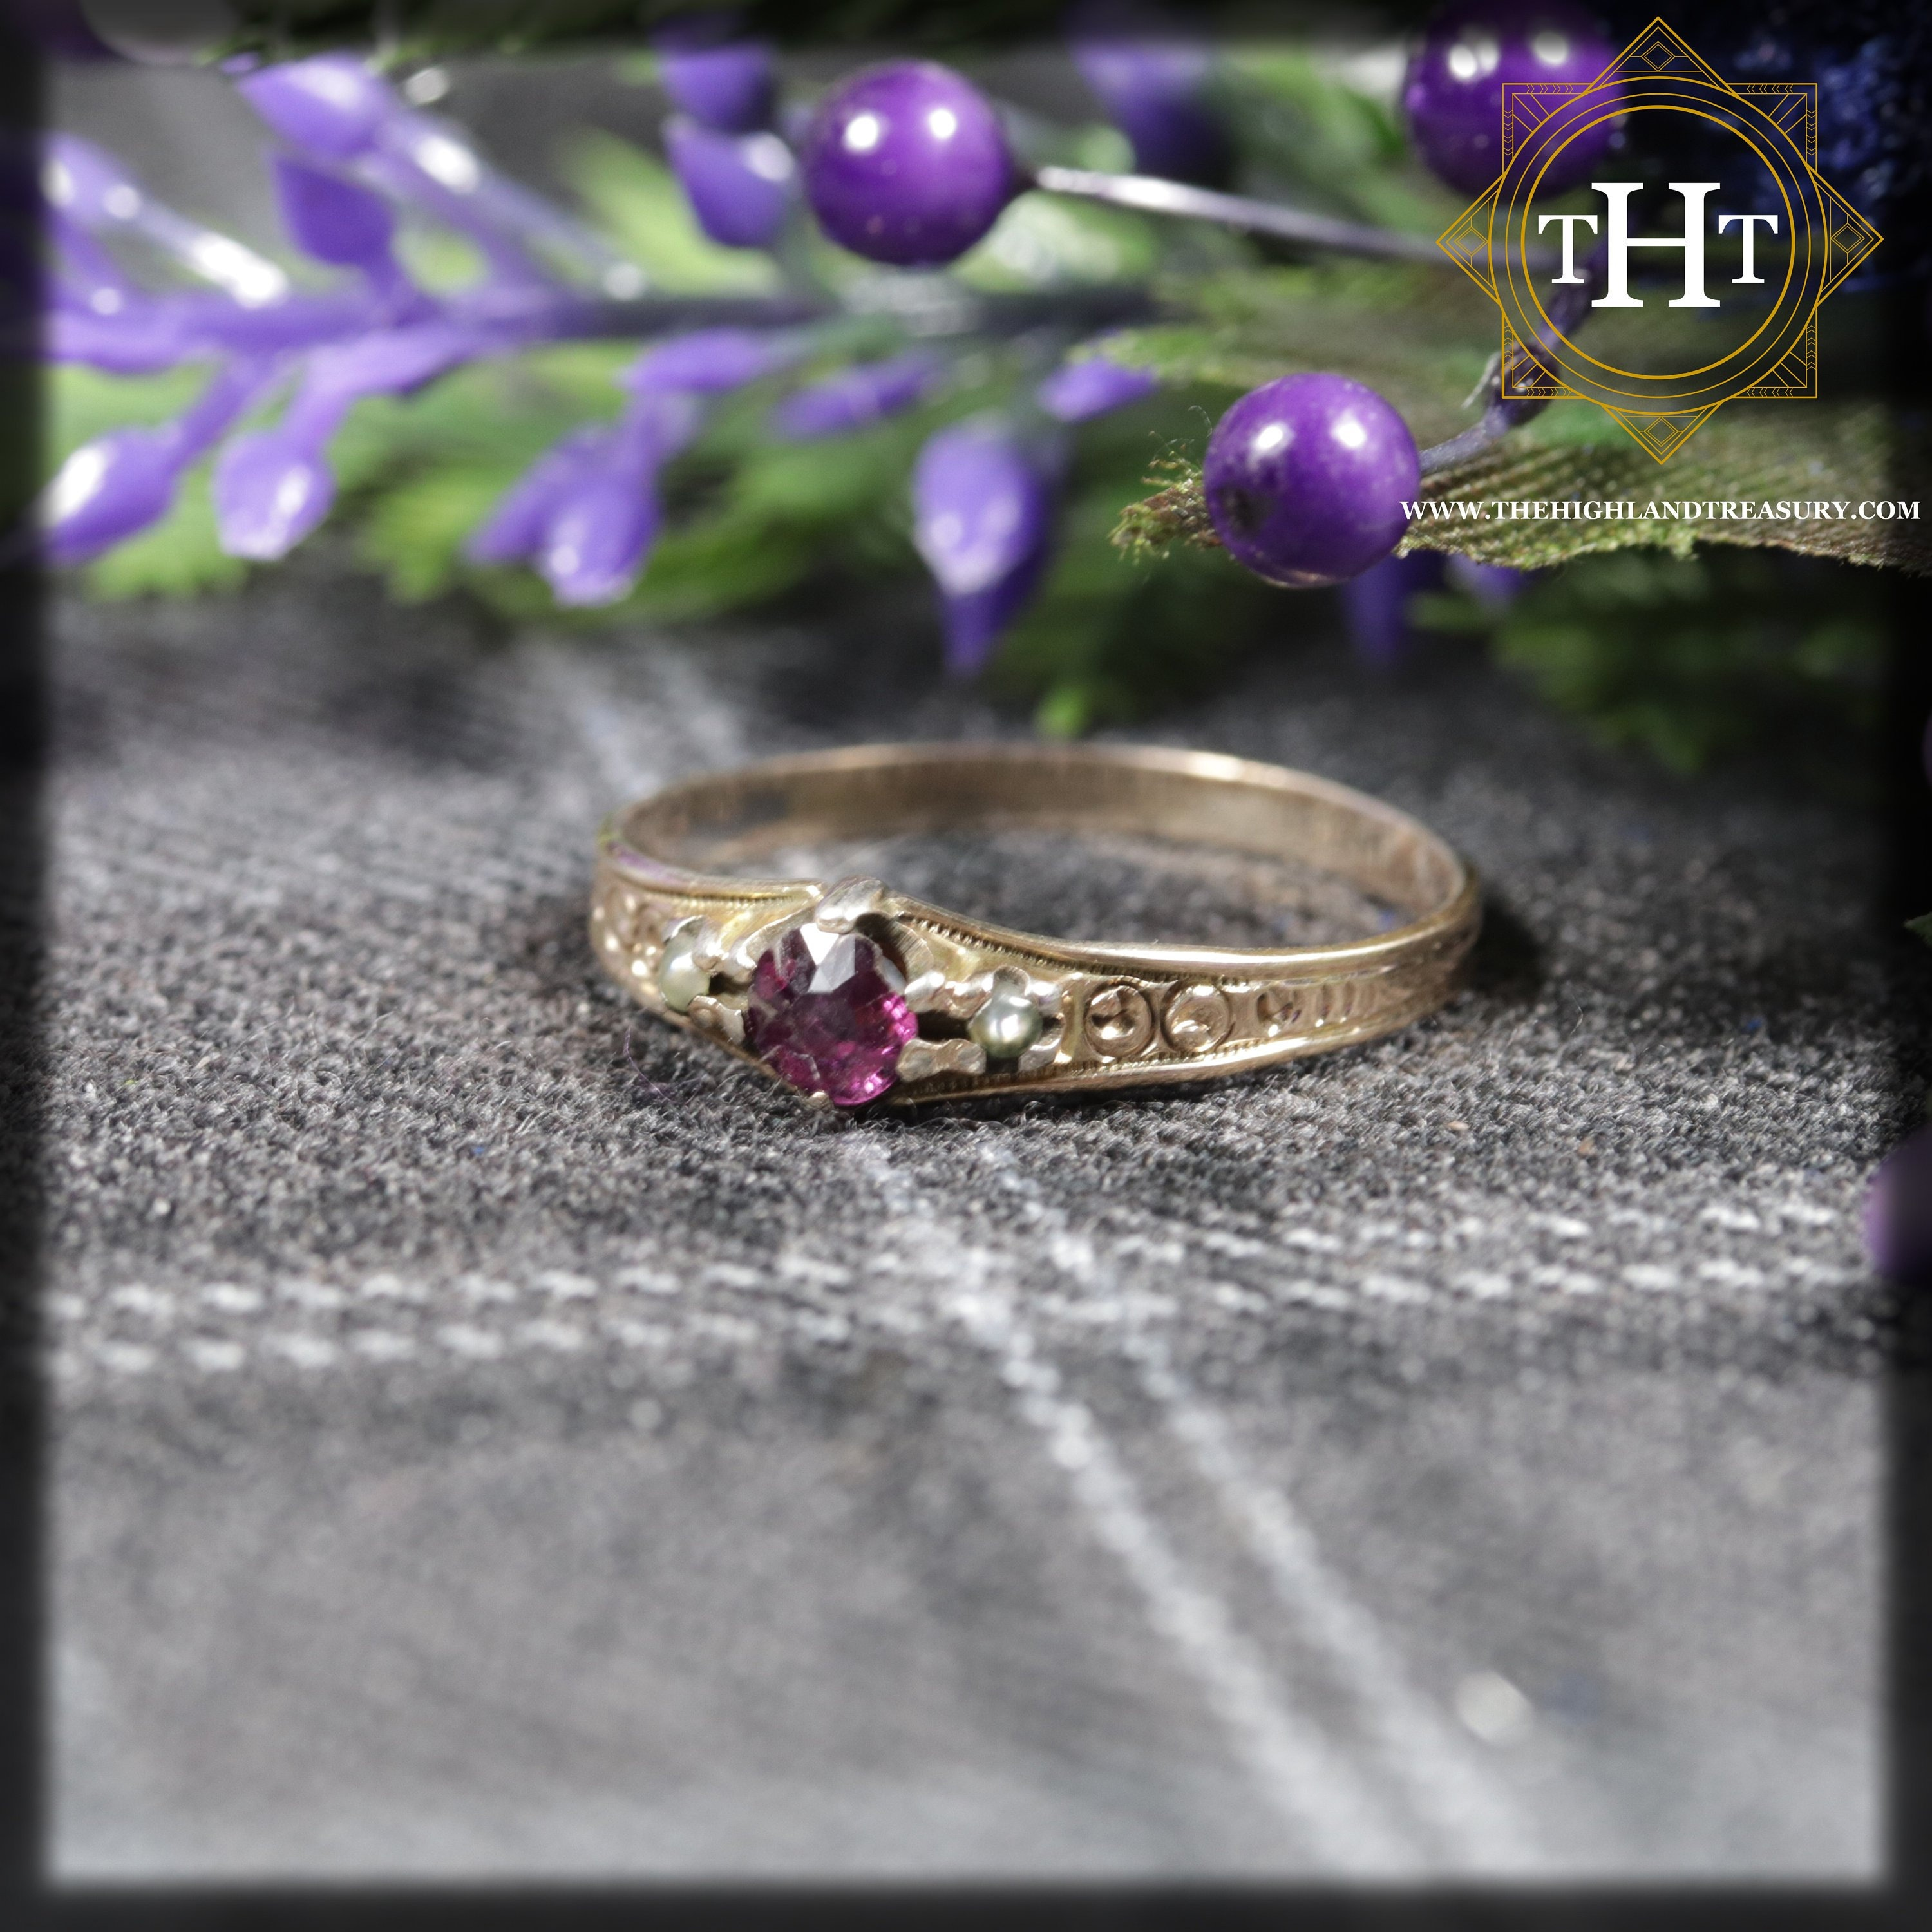 303c183a4 Edwardian 9K 9Ct 375 Solid Yellow Gold Round Cut Pink Ruby & Grey Cultured  Pearl Natural Gemstone Ring Size M 1/2 - 6 1/4